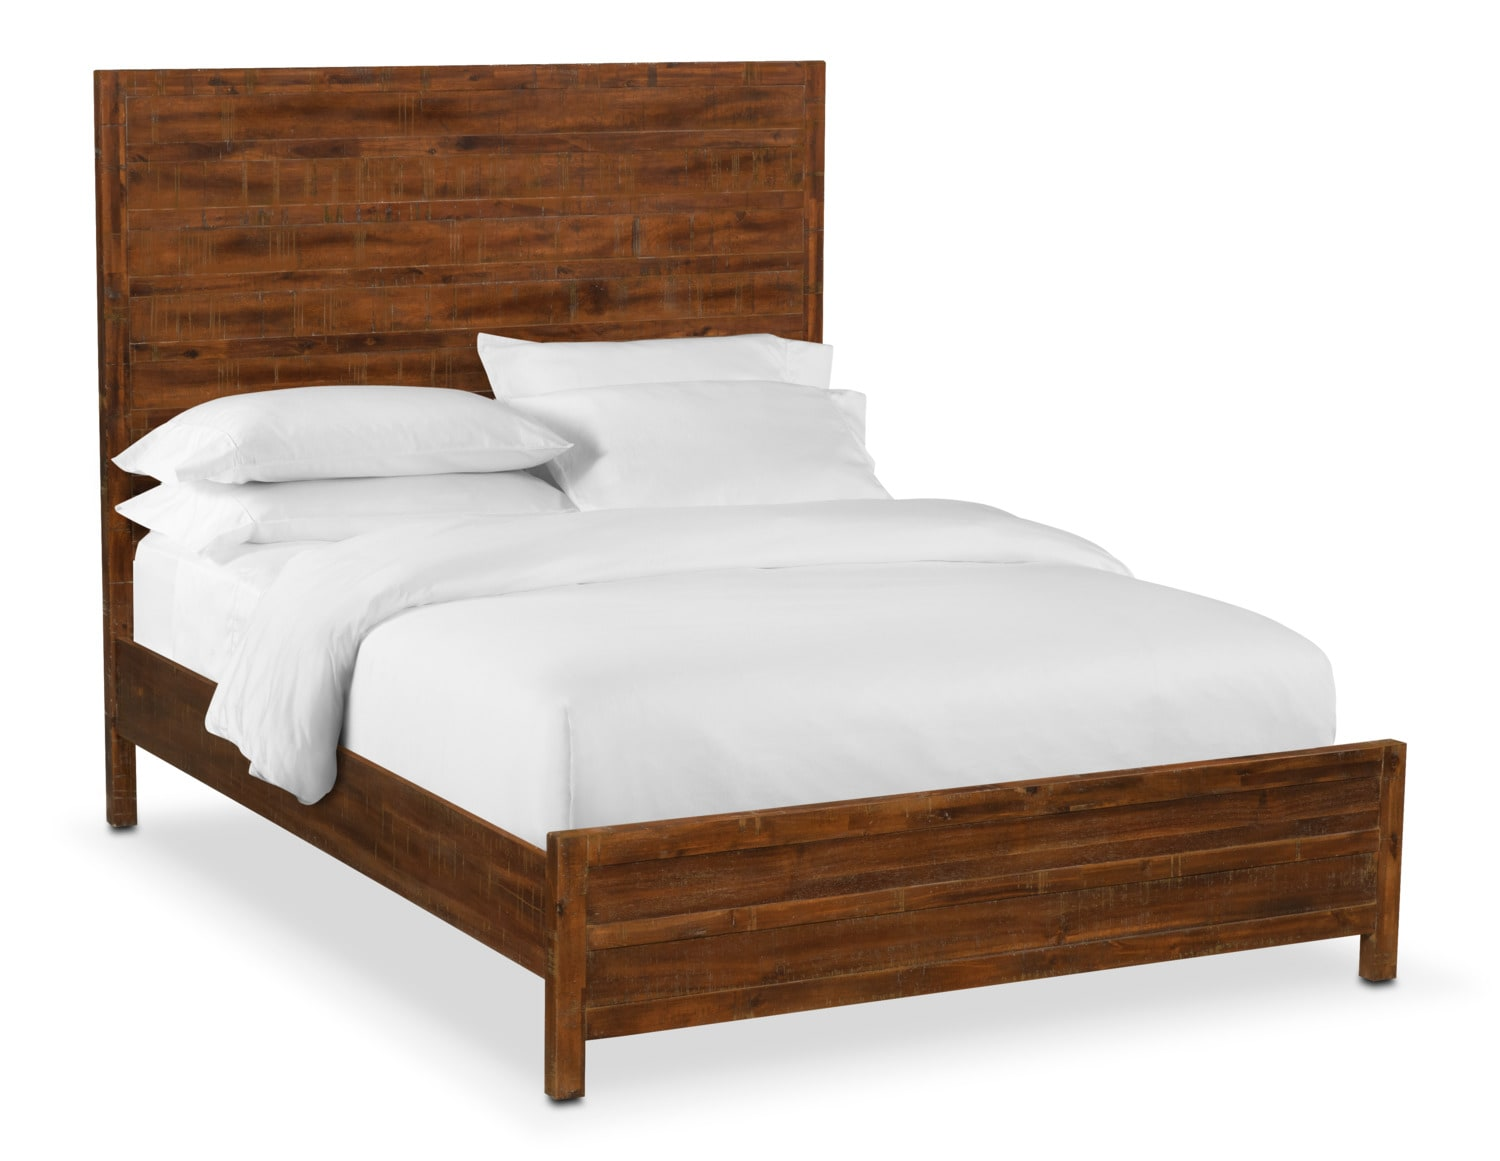 Ryder Queen Bed - Mahogany